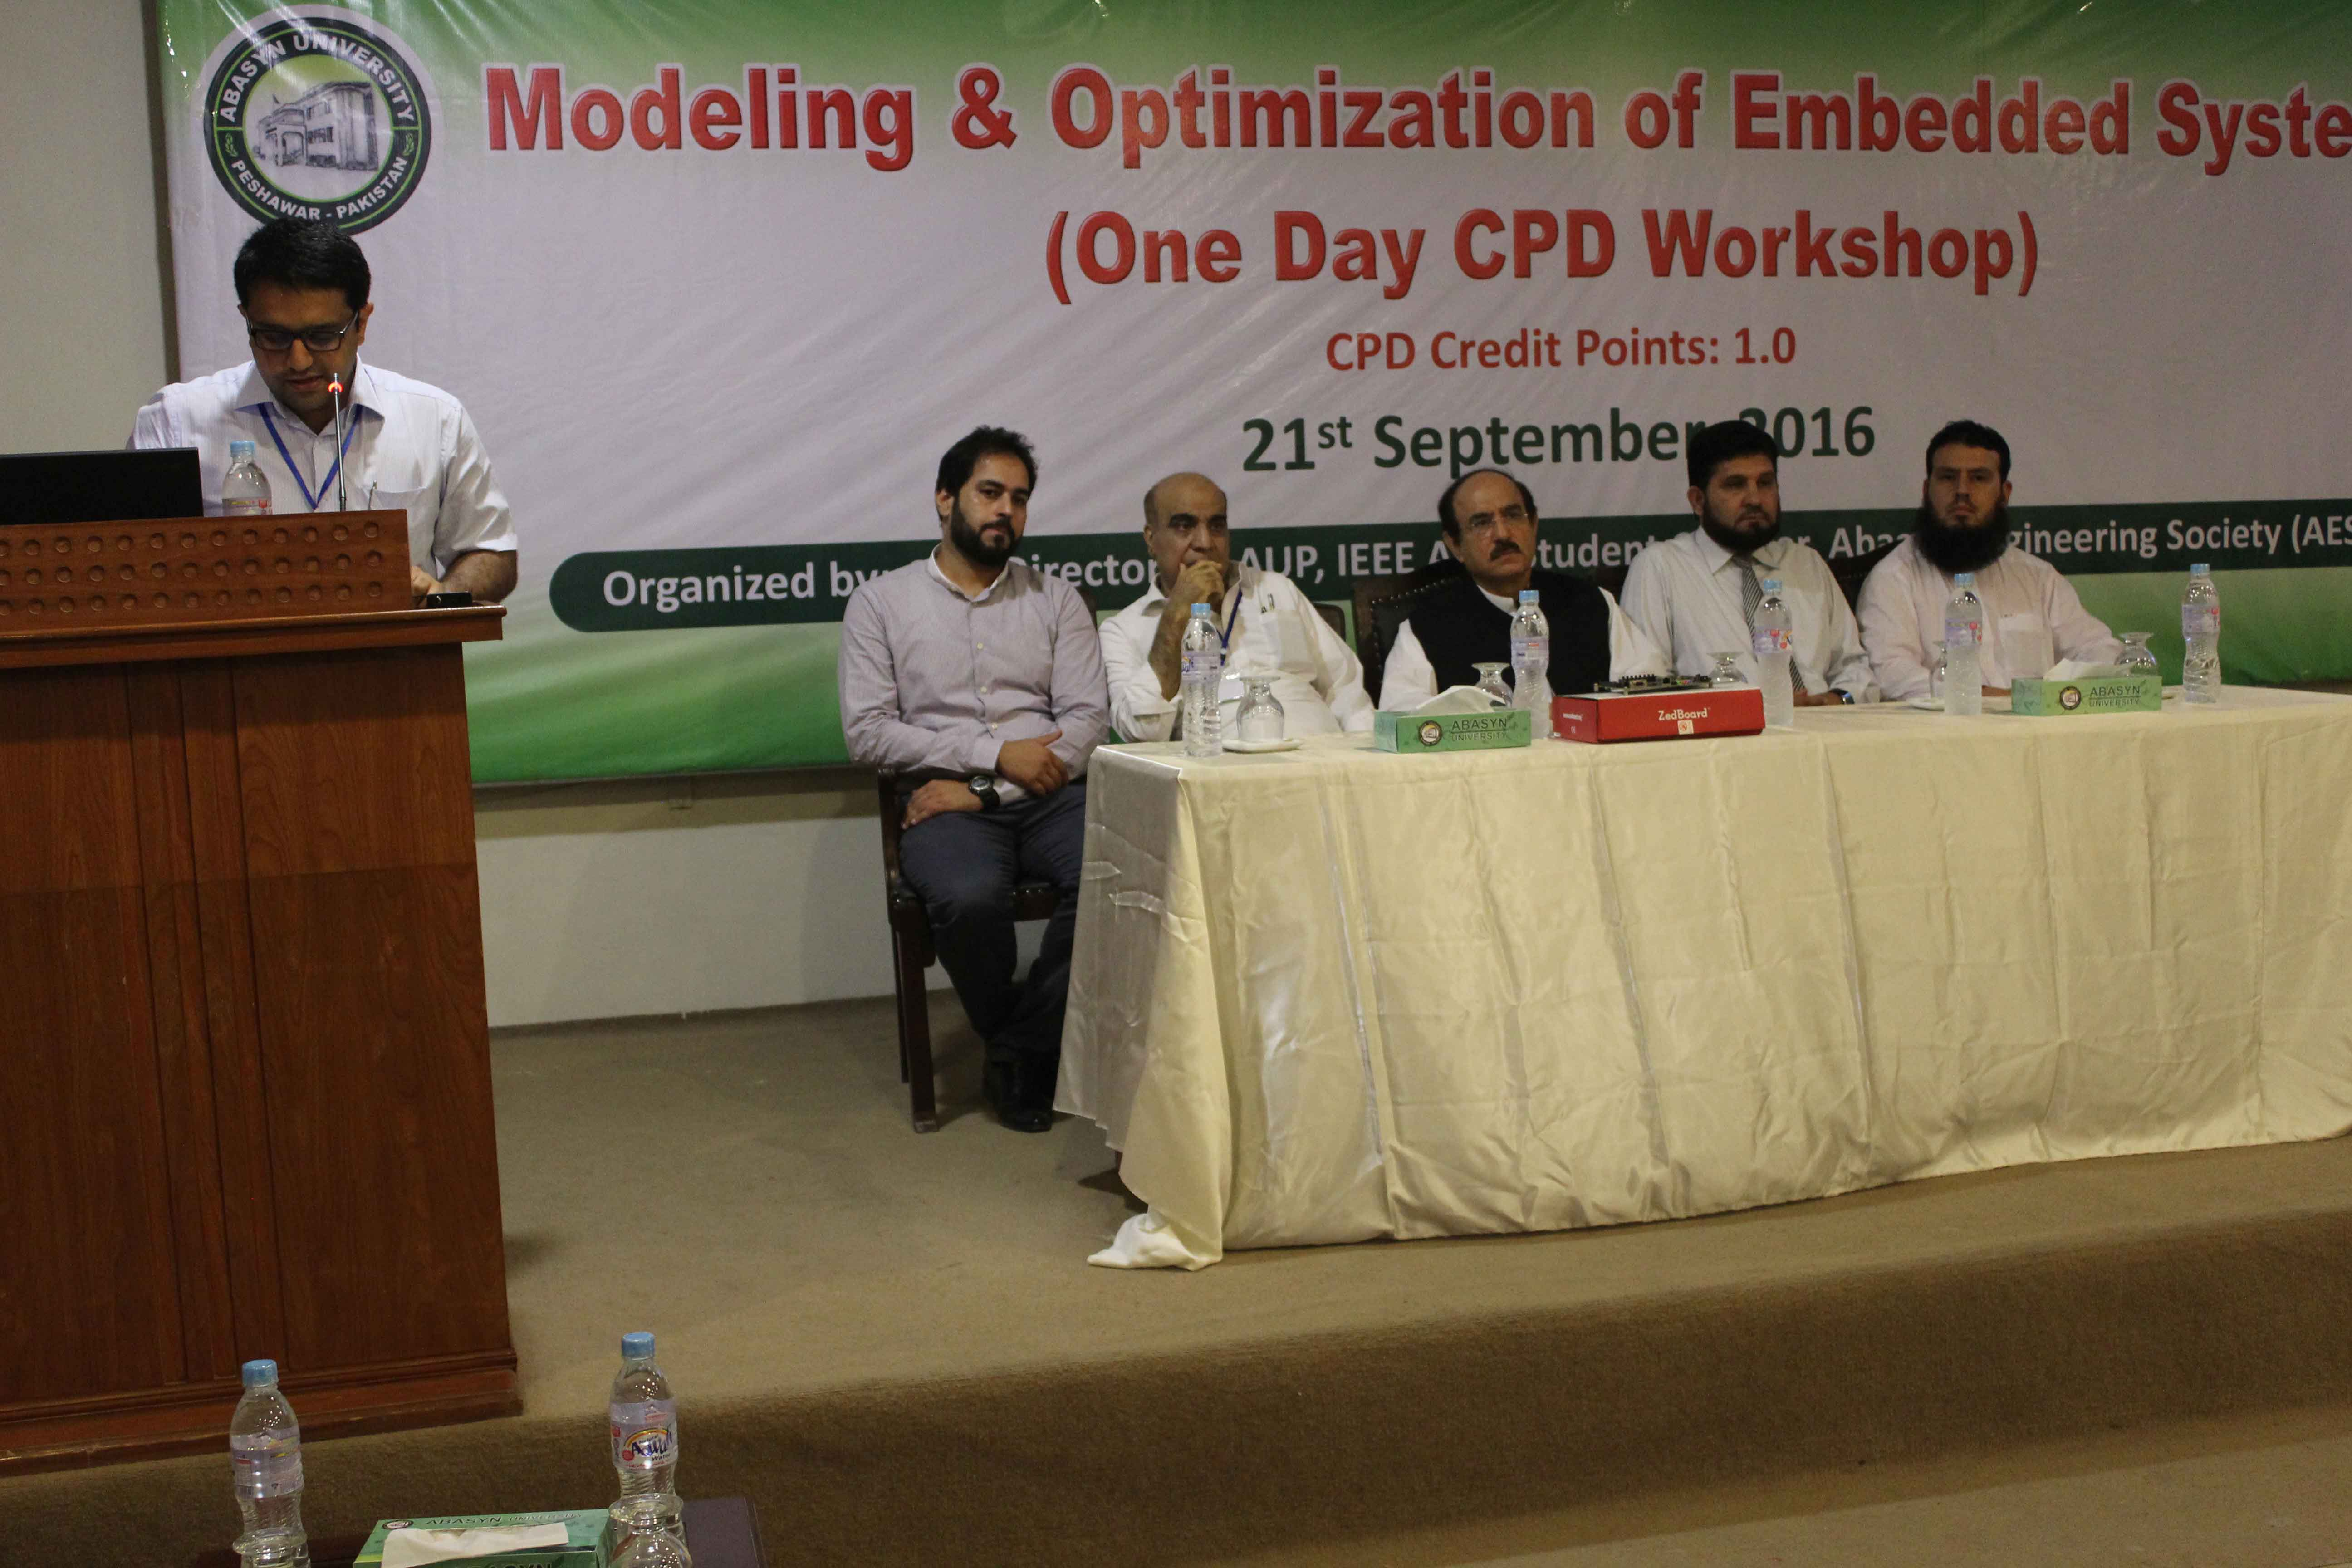 One Day CPD Workshop